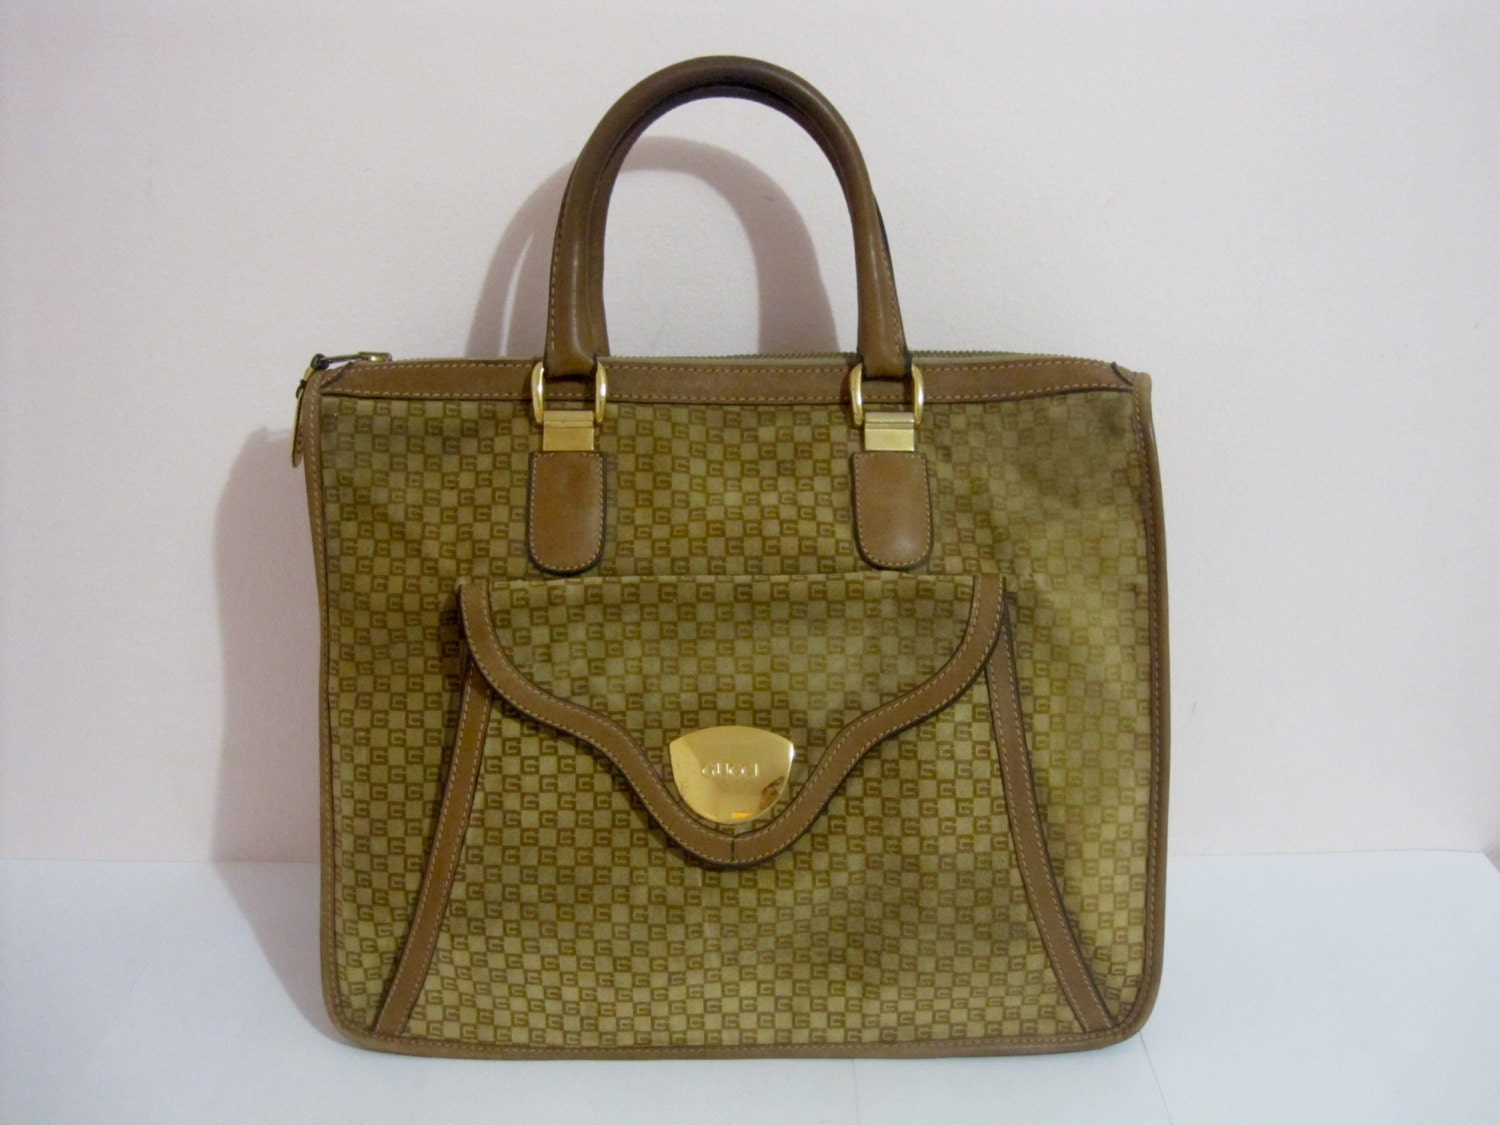 fa8f10e587fb Vintage Gucci Bags 1970s | Stanford Center for Opportunity Policy in ...